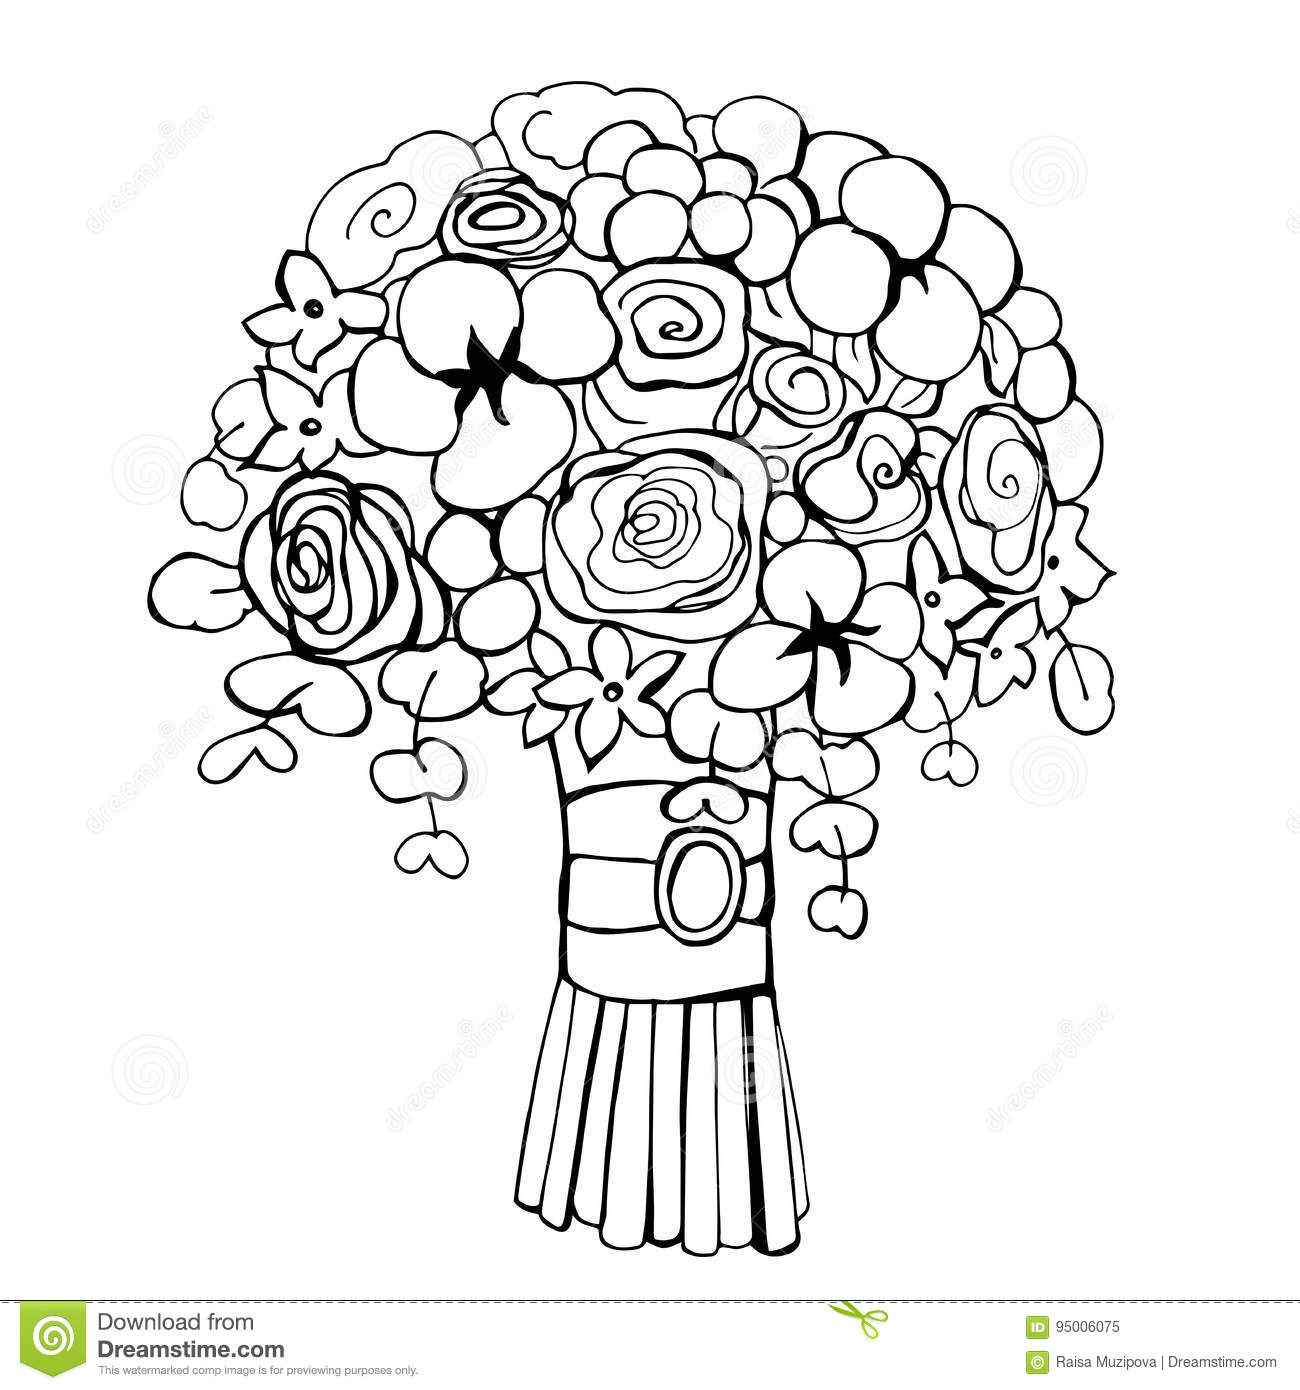 wedding flowers coloring pages - wedding bouquet coloring pages az sketch coloring page